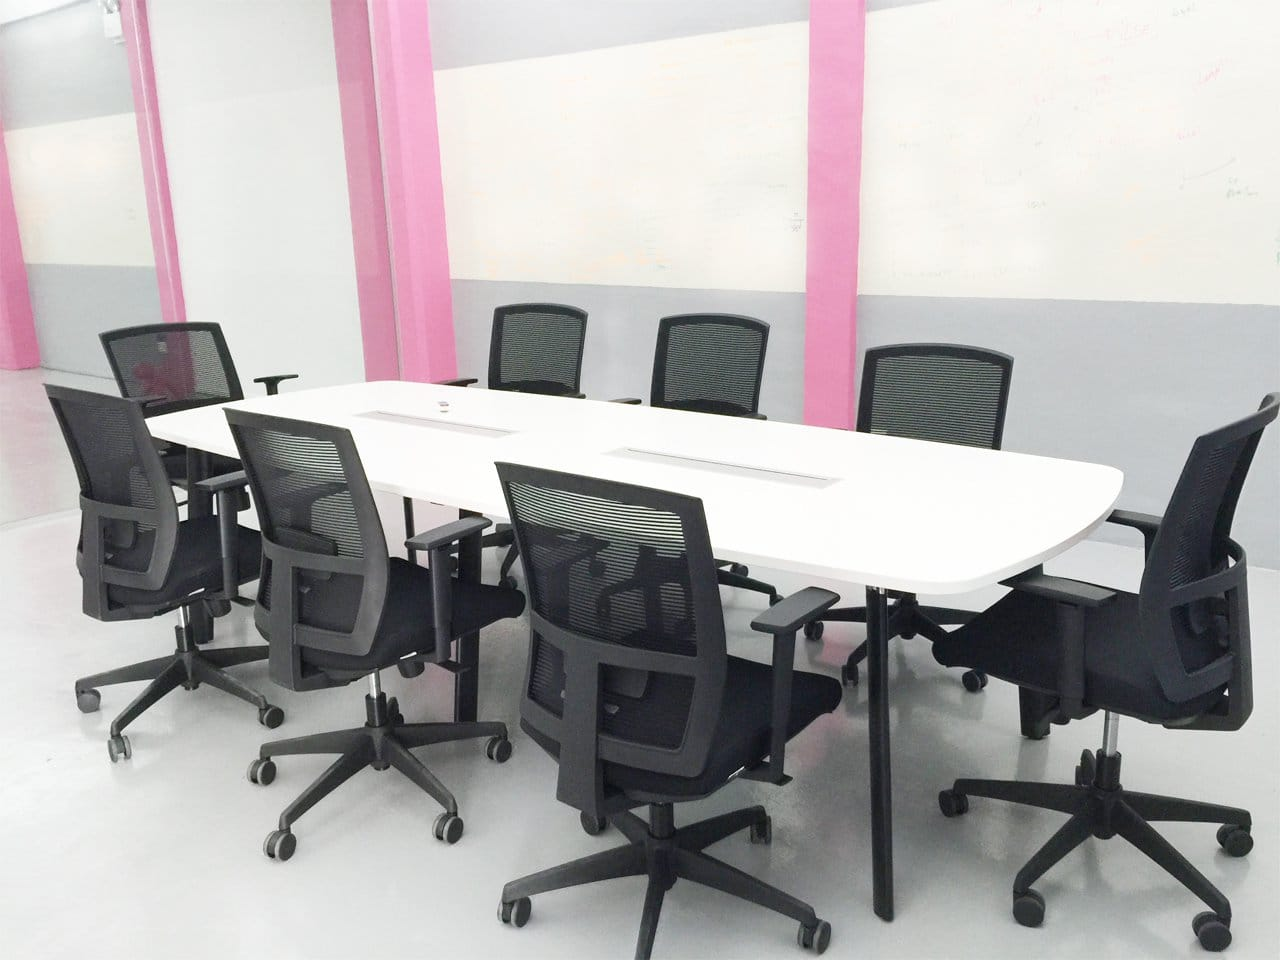 Fullerton Healthcare - Finexis Building | Products seen: [Boris Midback Office Chair]<br />